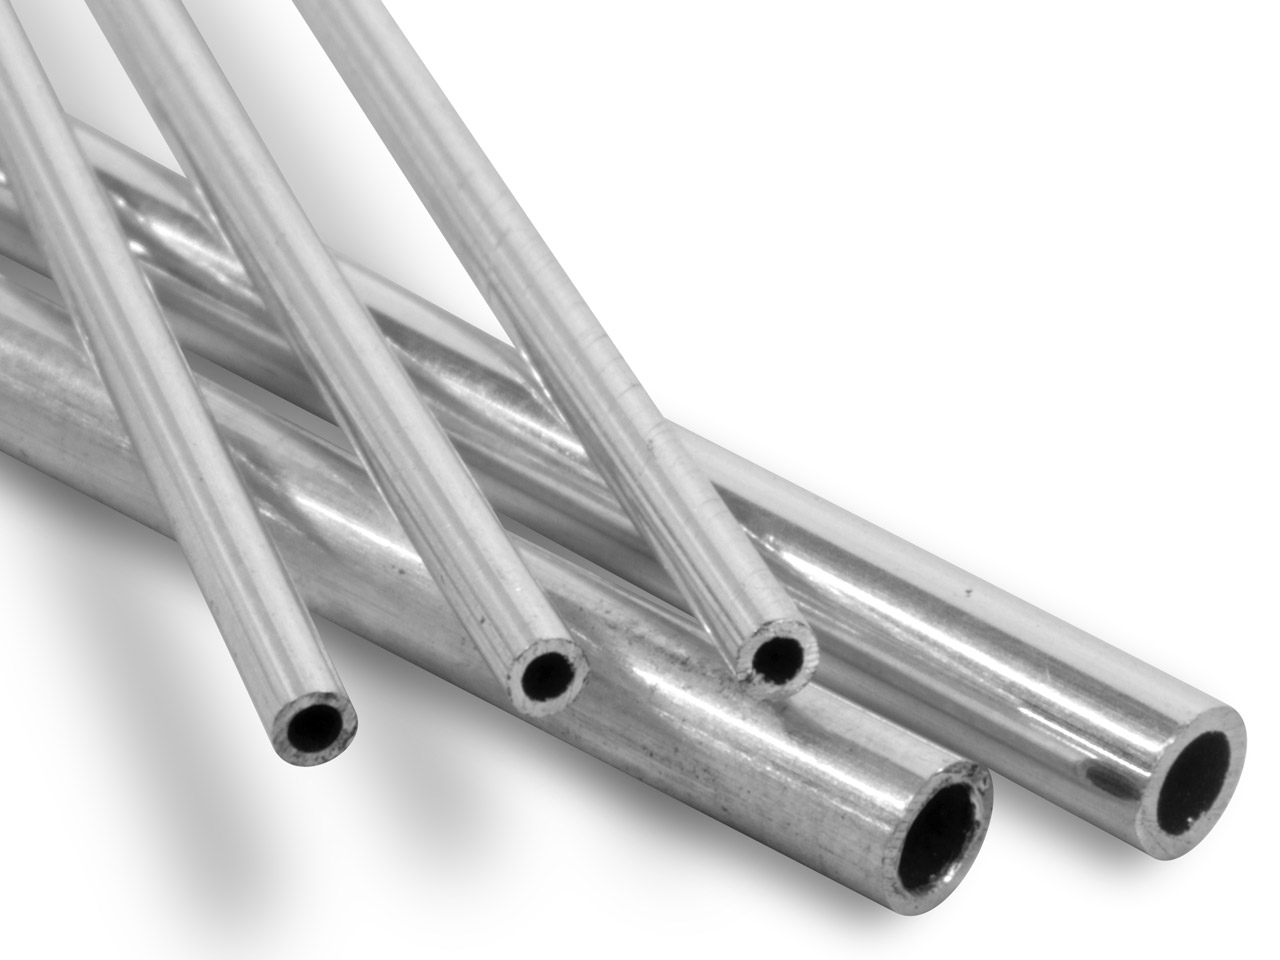 Sterling Silver Tube, Ref 6,       Outside Diameter 2.8mm,            Inside Diameter 2.0mm, 0.4mm Wall  Thickness